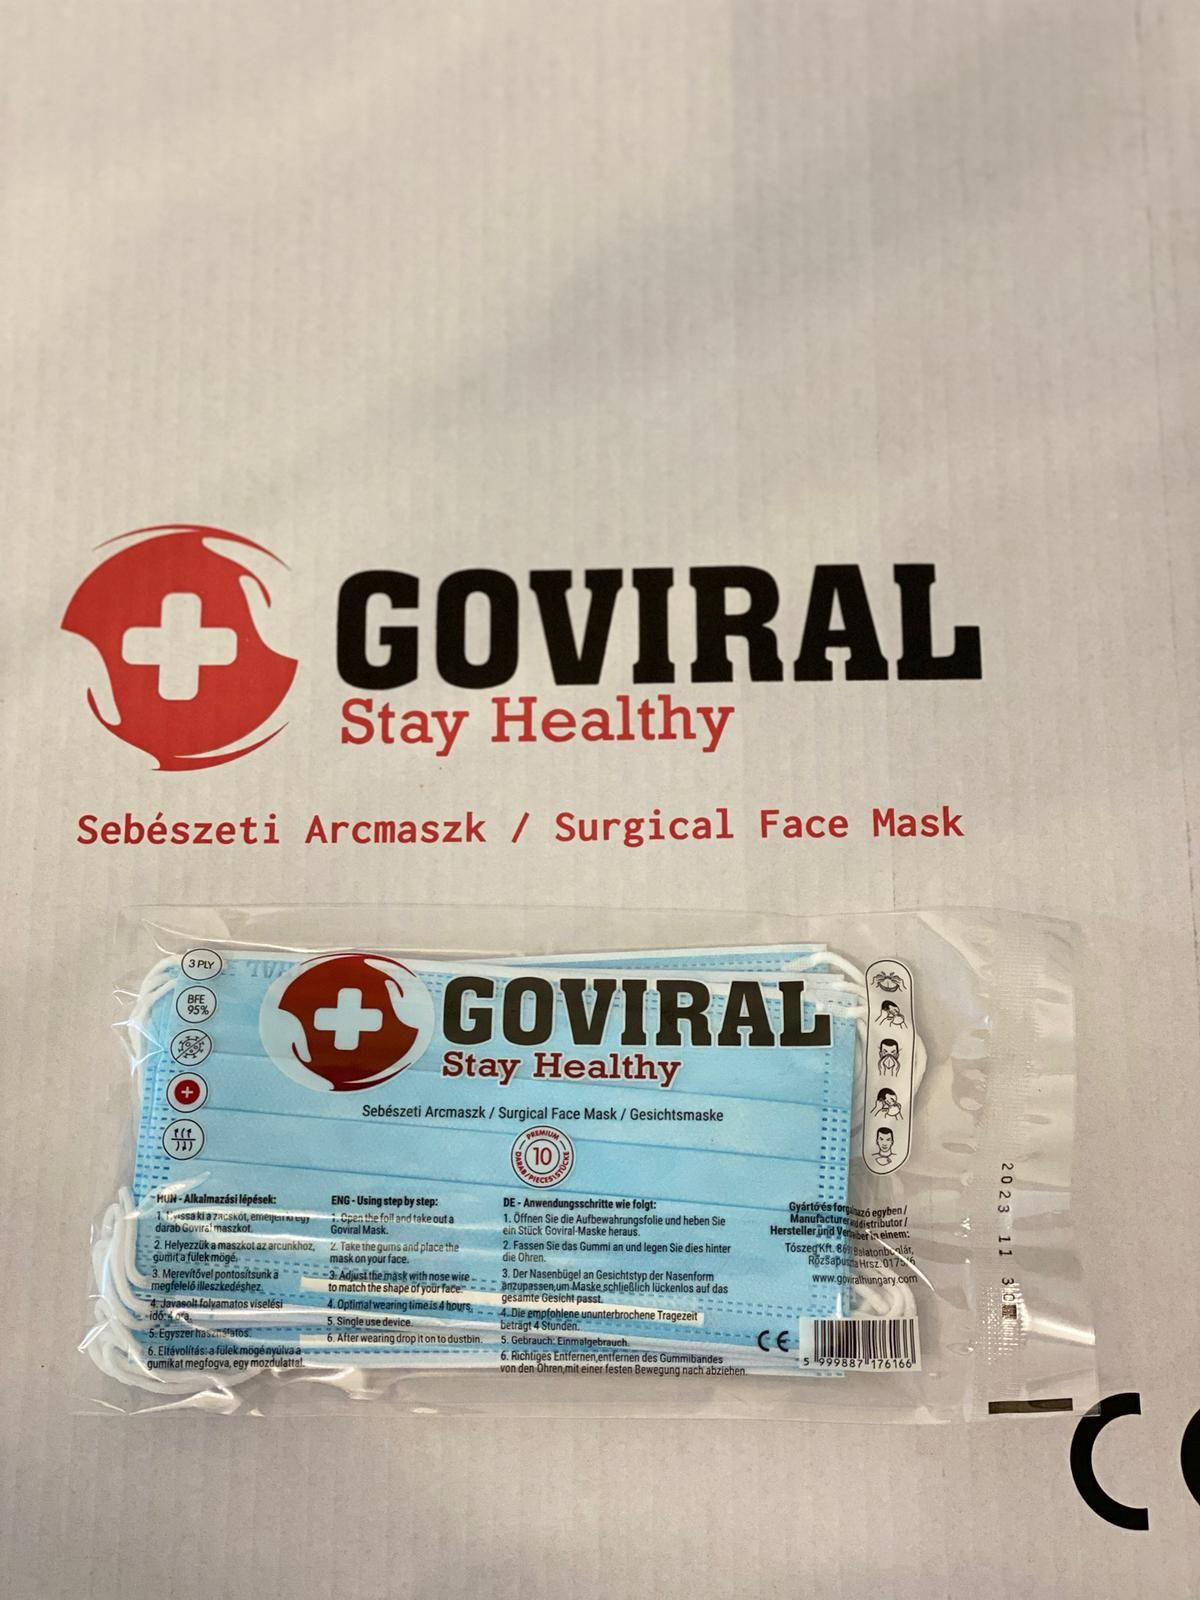 Goviral Surgical/MEDICAL Face Mask 3PLY 10PCS MADE IN EU!